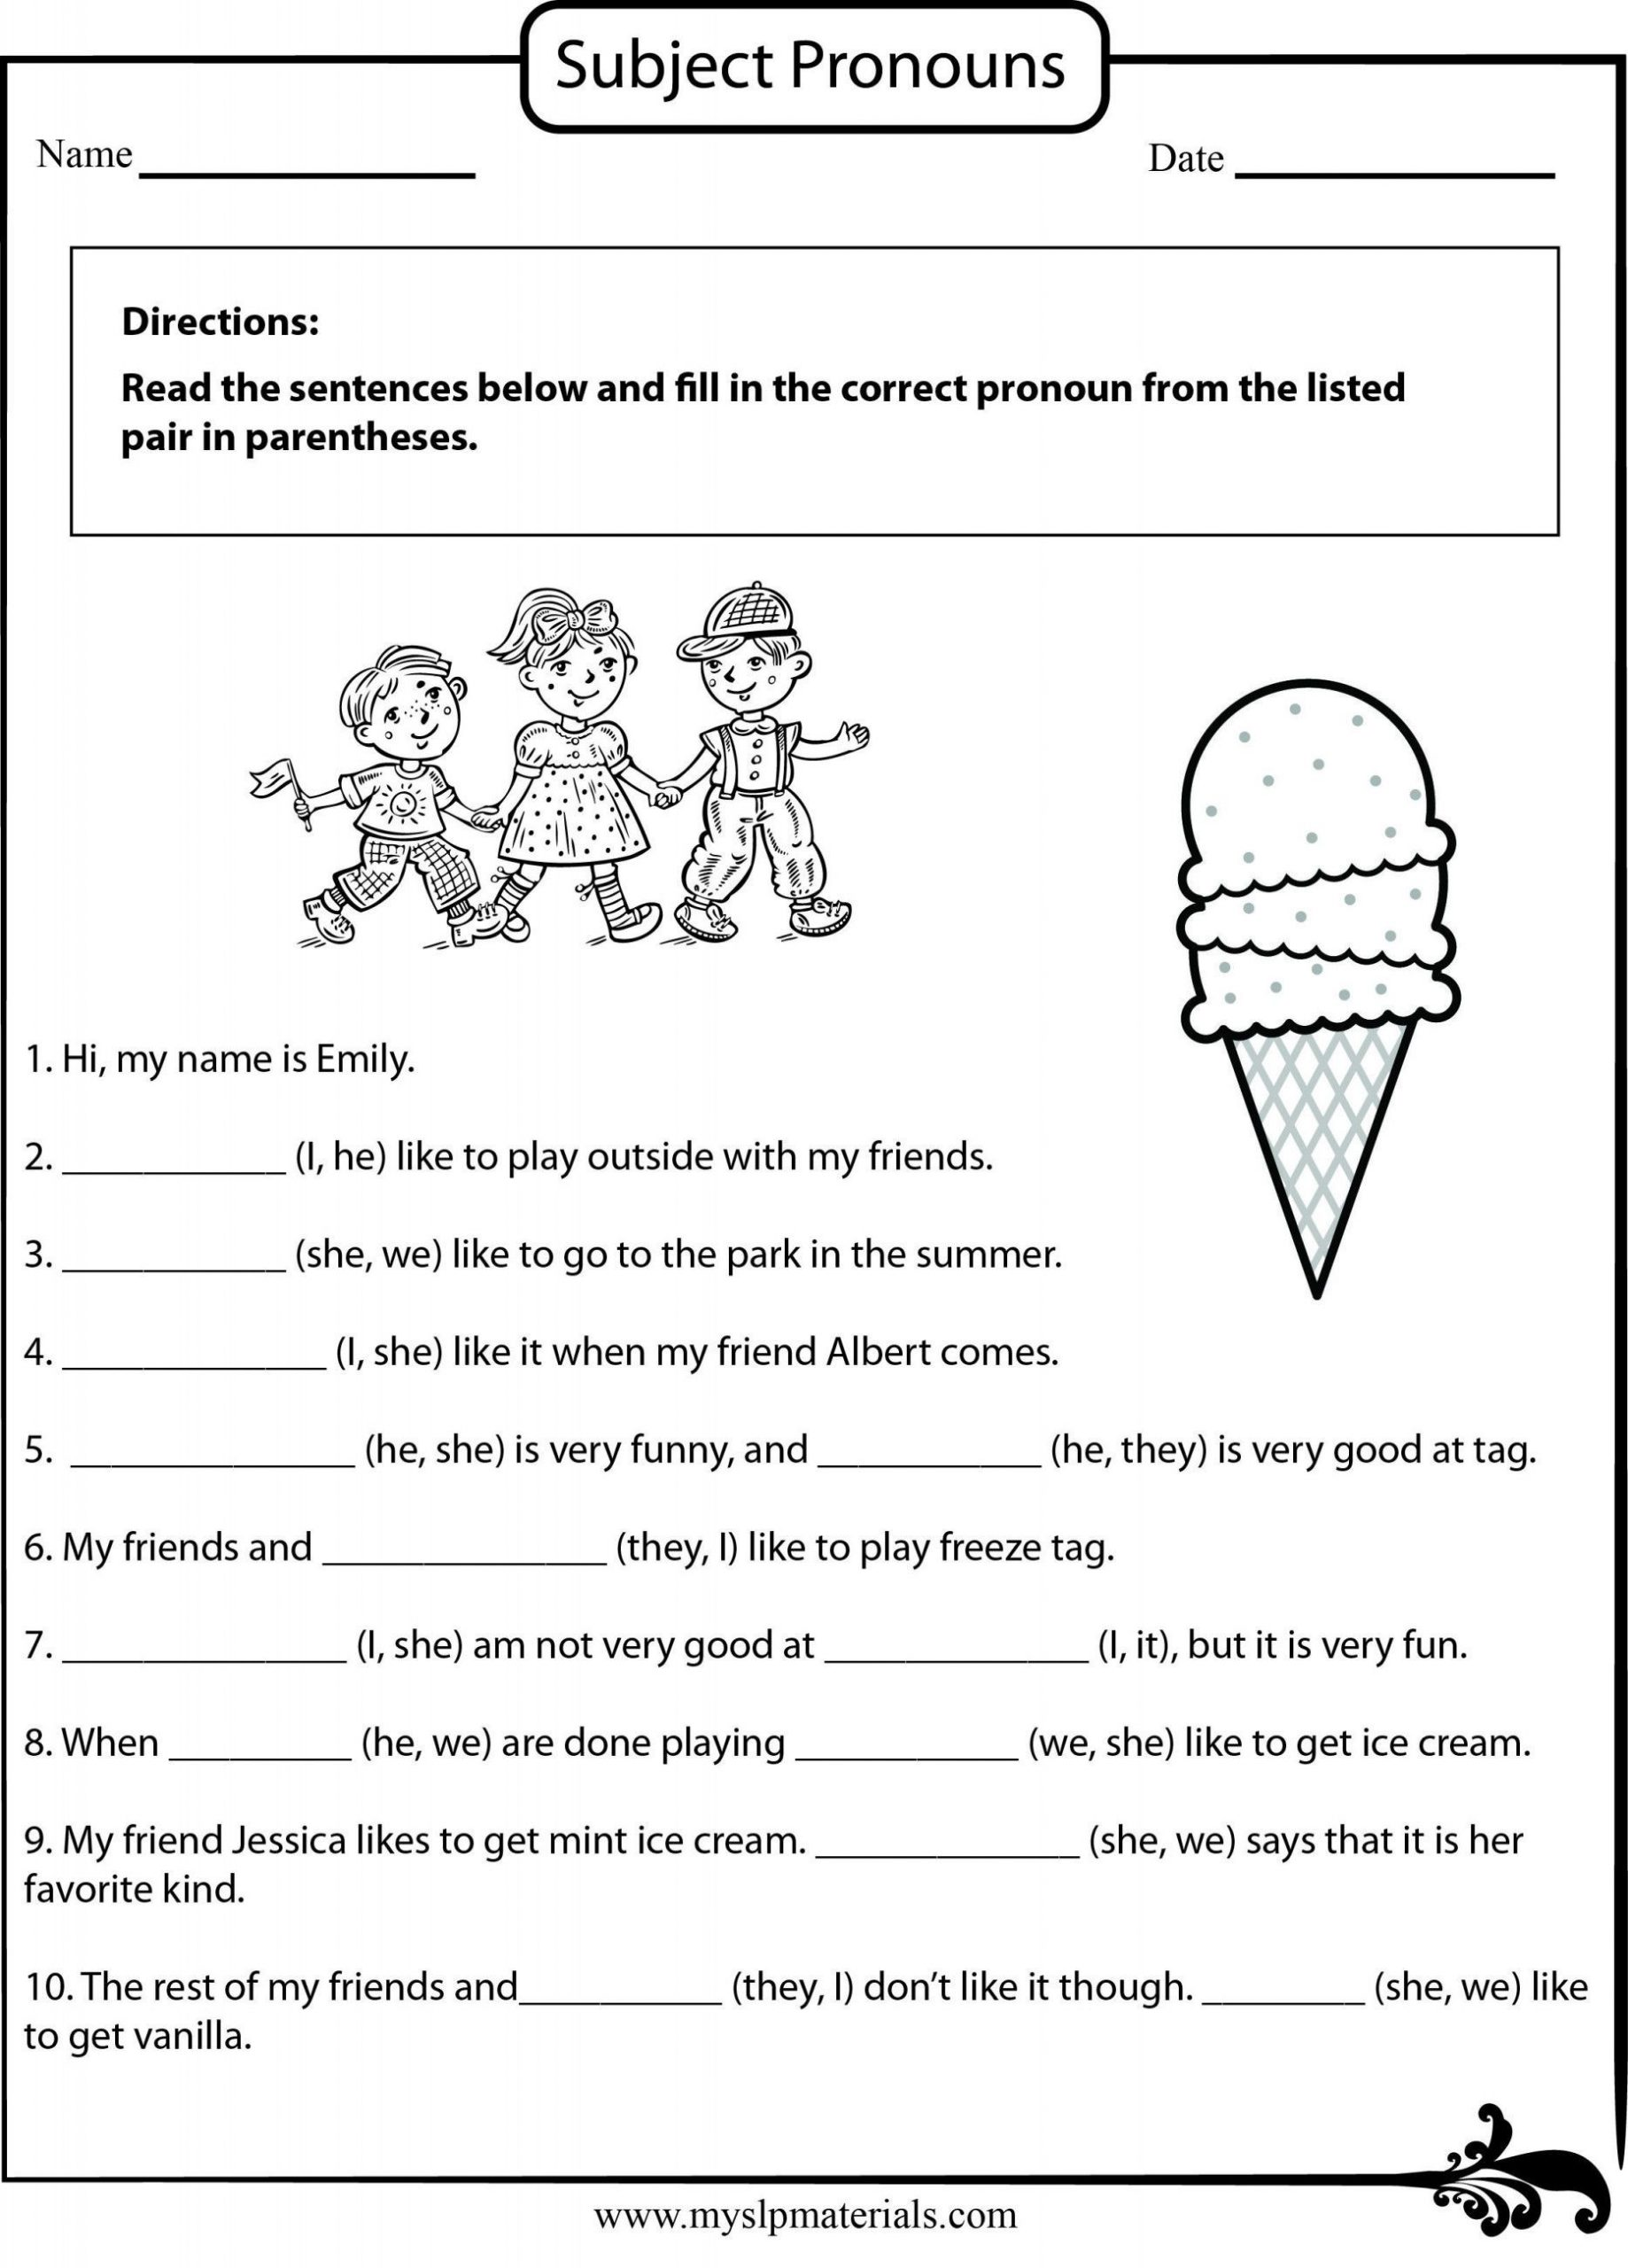 Pronoun Worksheets for 2nd Graders Pronoun Worksheet for Grade 2 Doc